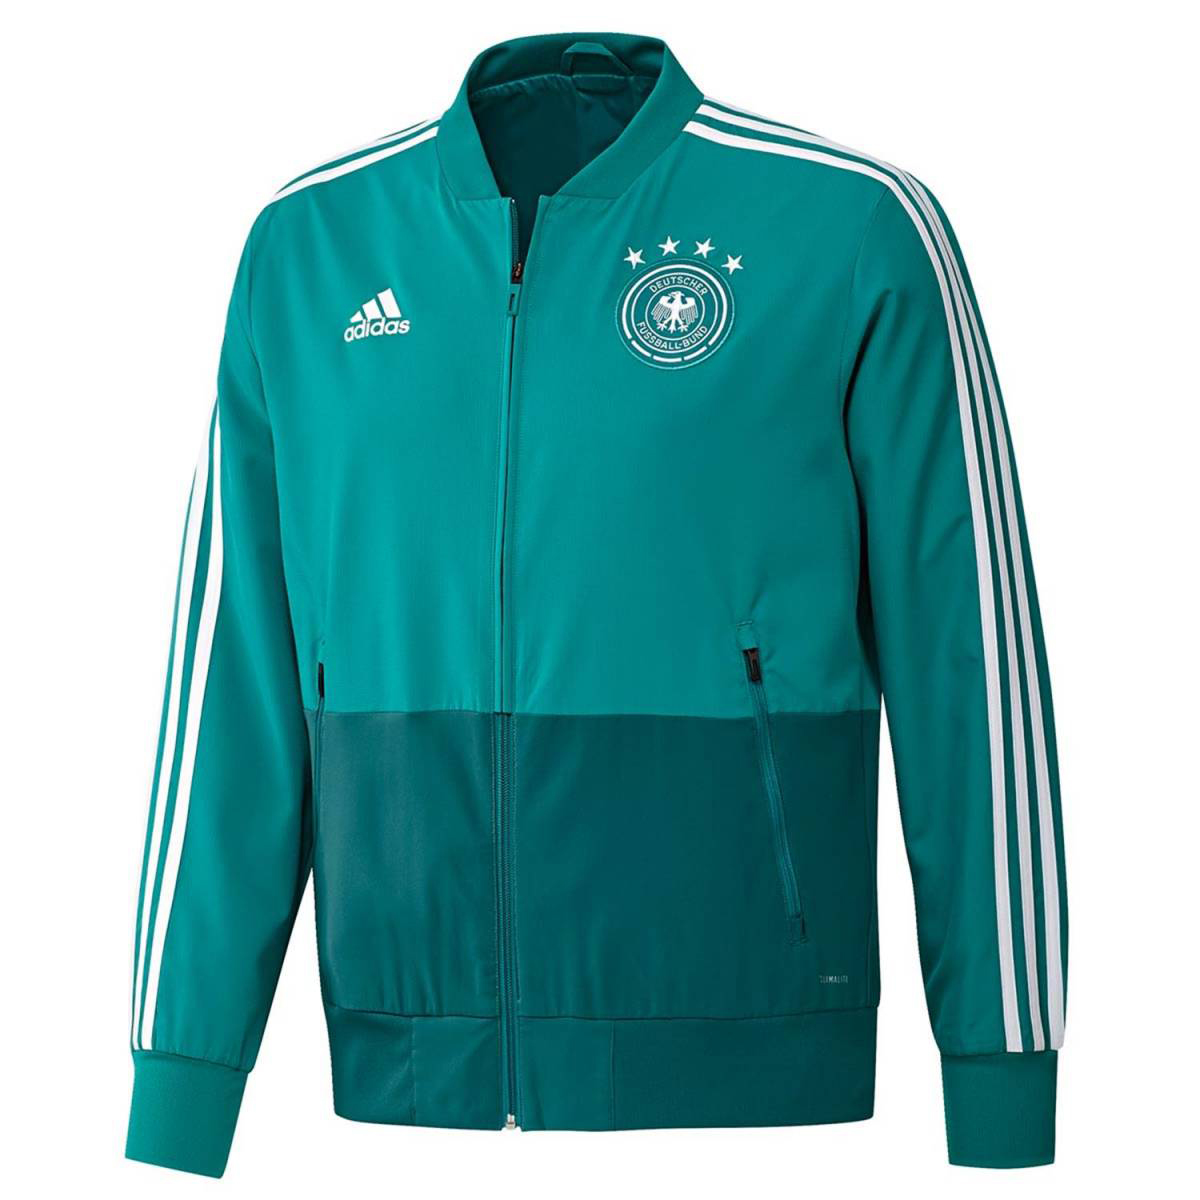 6e4bc8335cf Adidas Duitsland Trainingsjack. CE6588 Turquoise Eqt Green White Real Teal